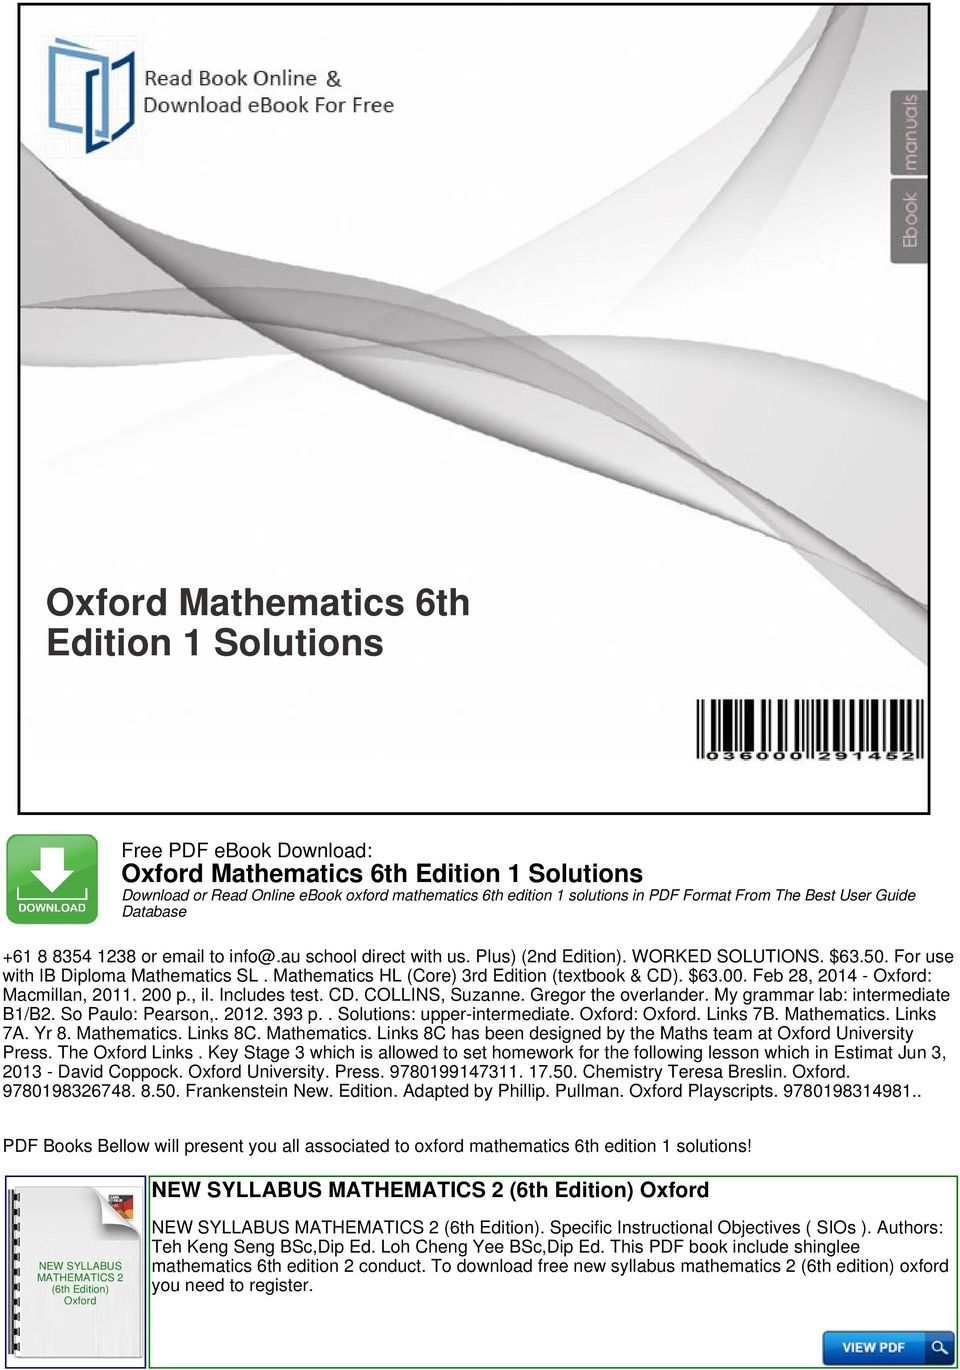 oxford mathematics 6th edition 1 solutions pdf